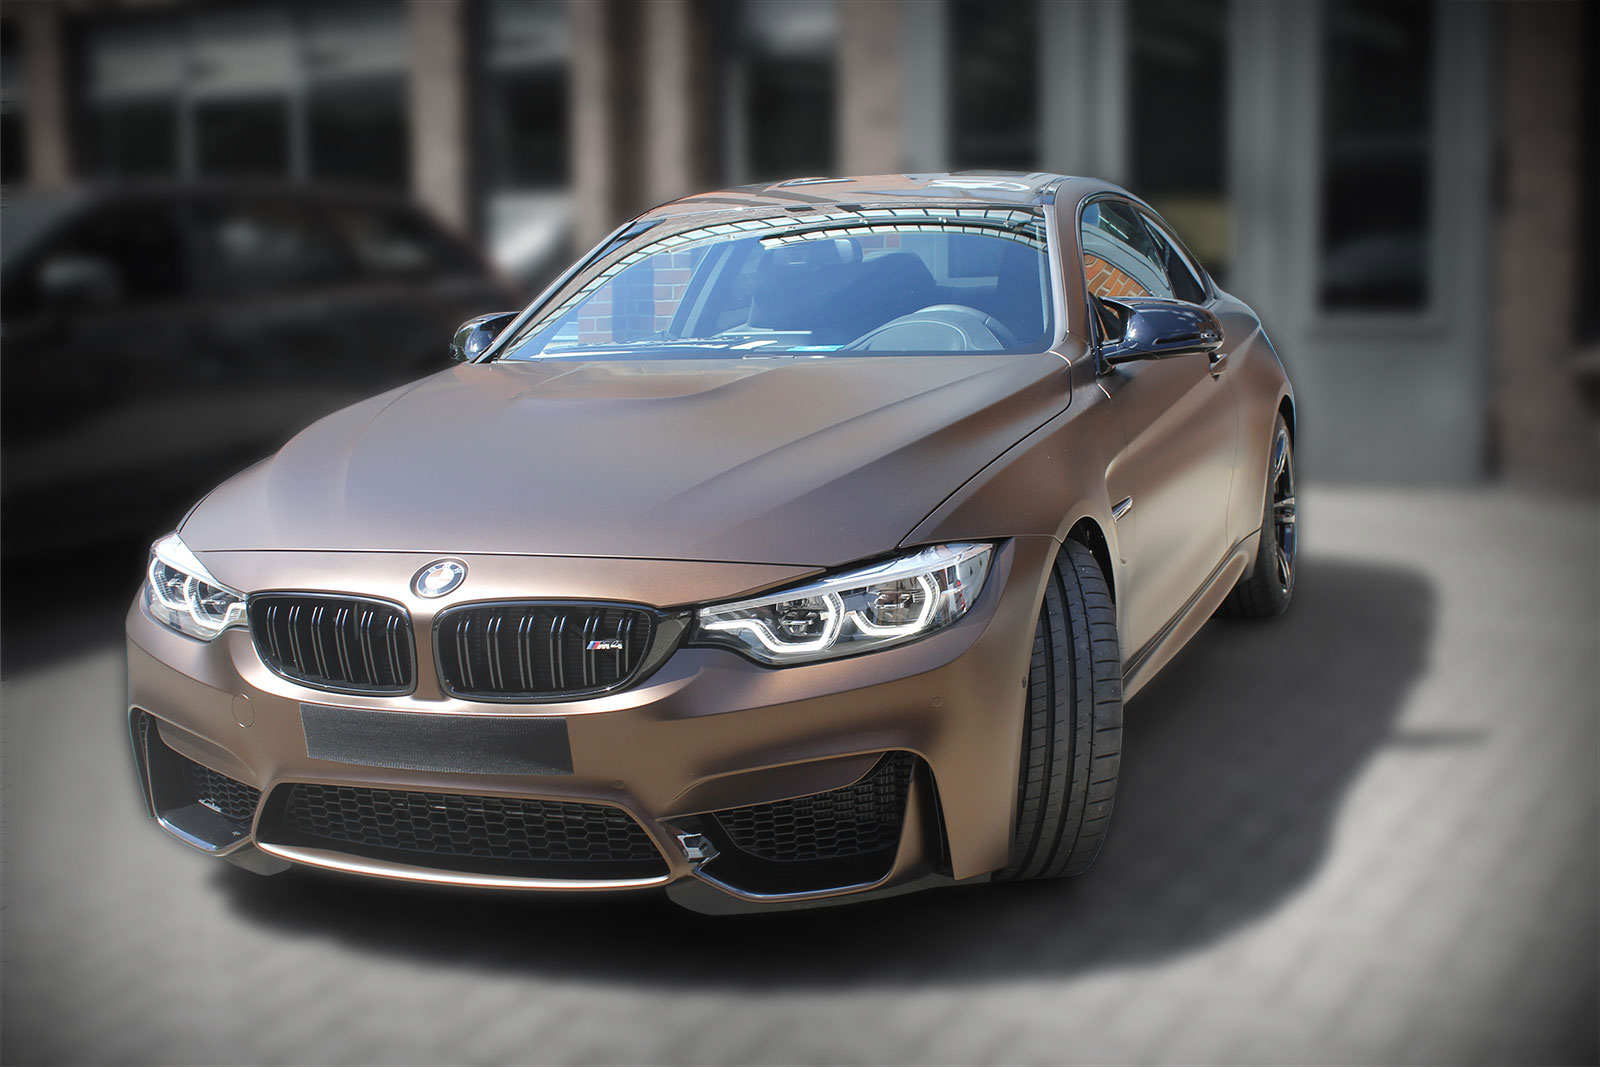 BMW-M4-Coupe_KPMF--Java-Brown-mattBasis